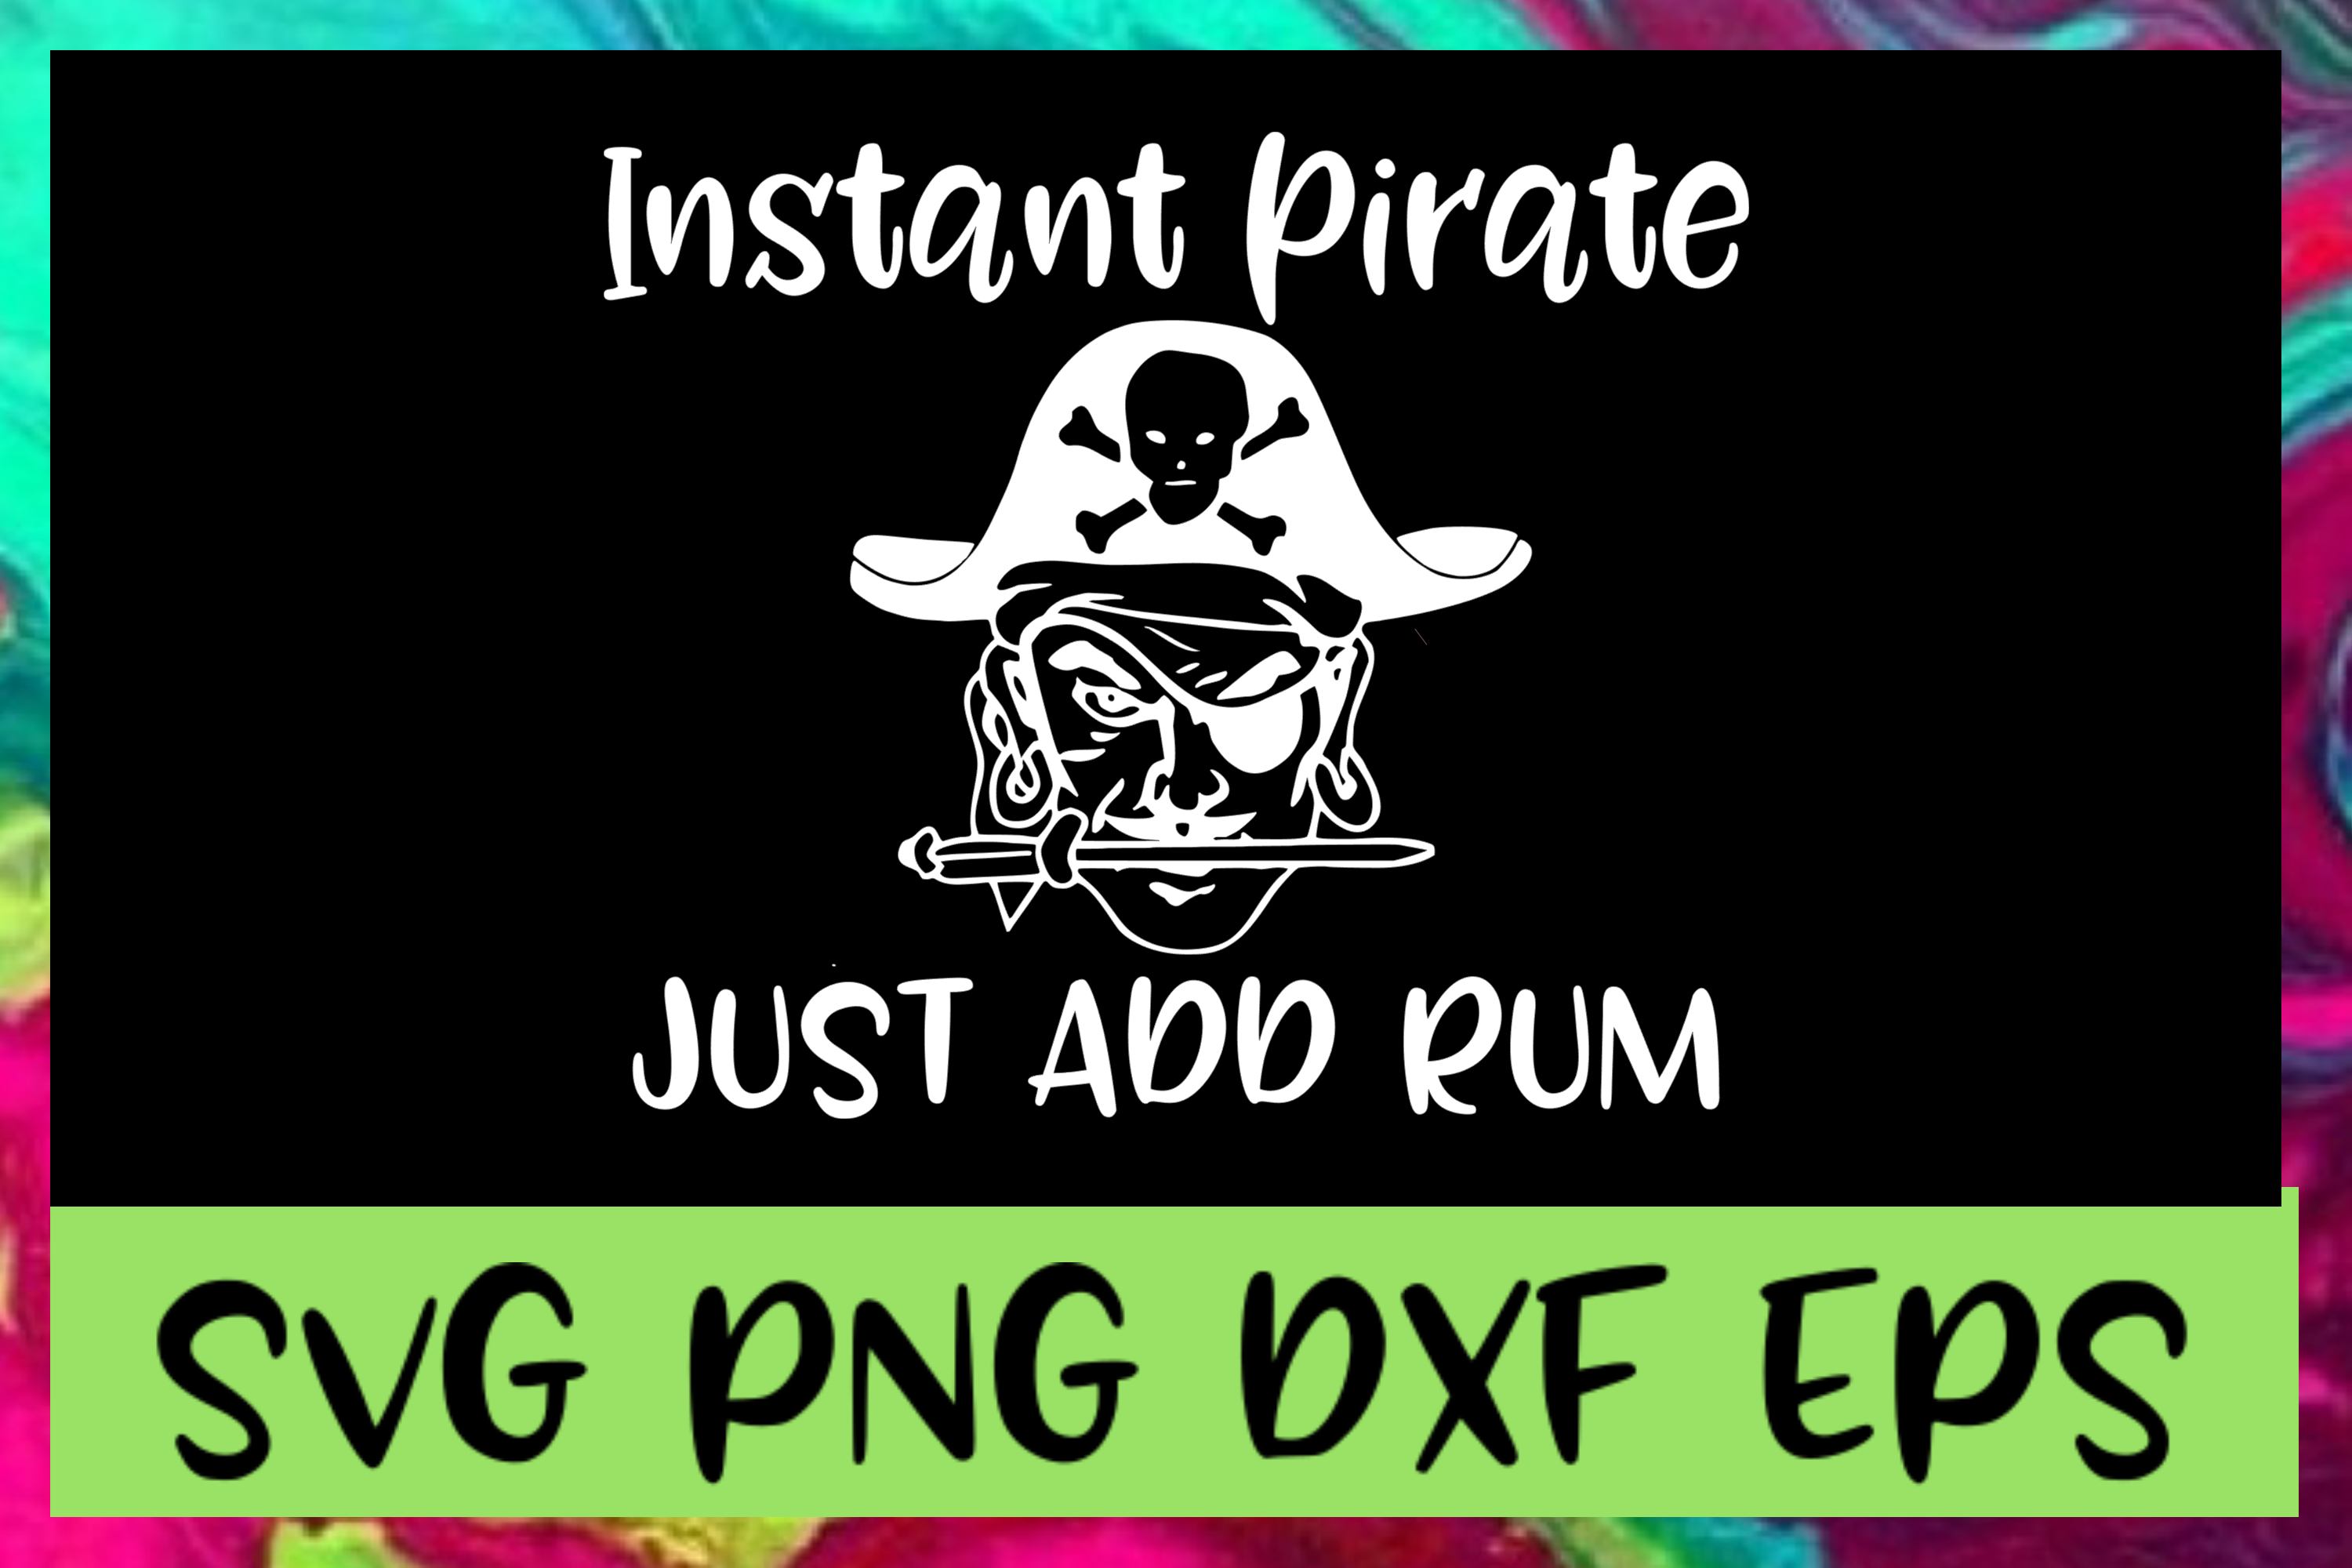 Just Add Rum SVG PNG DXF & EPS Design Files example image 1